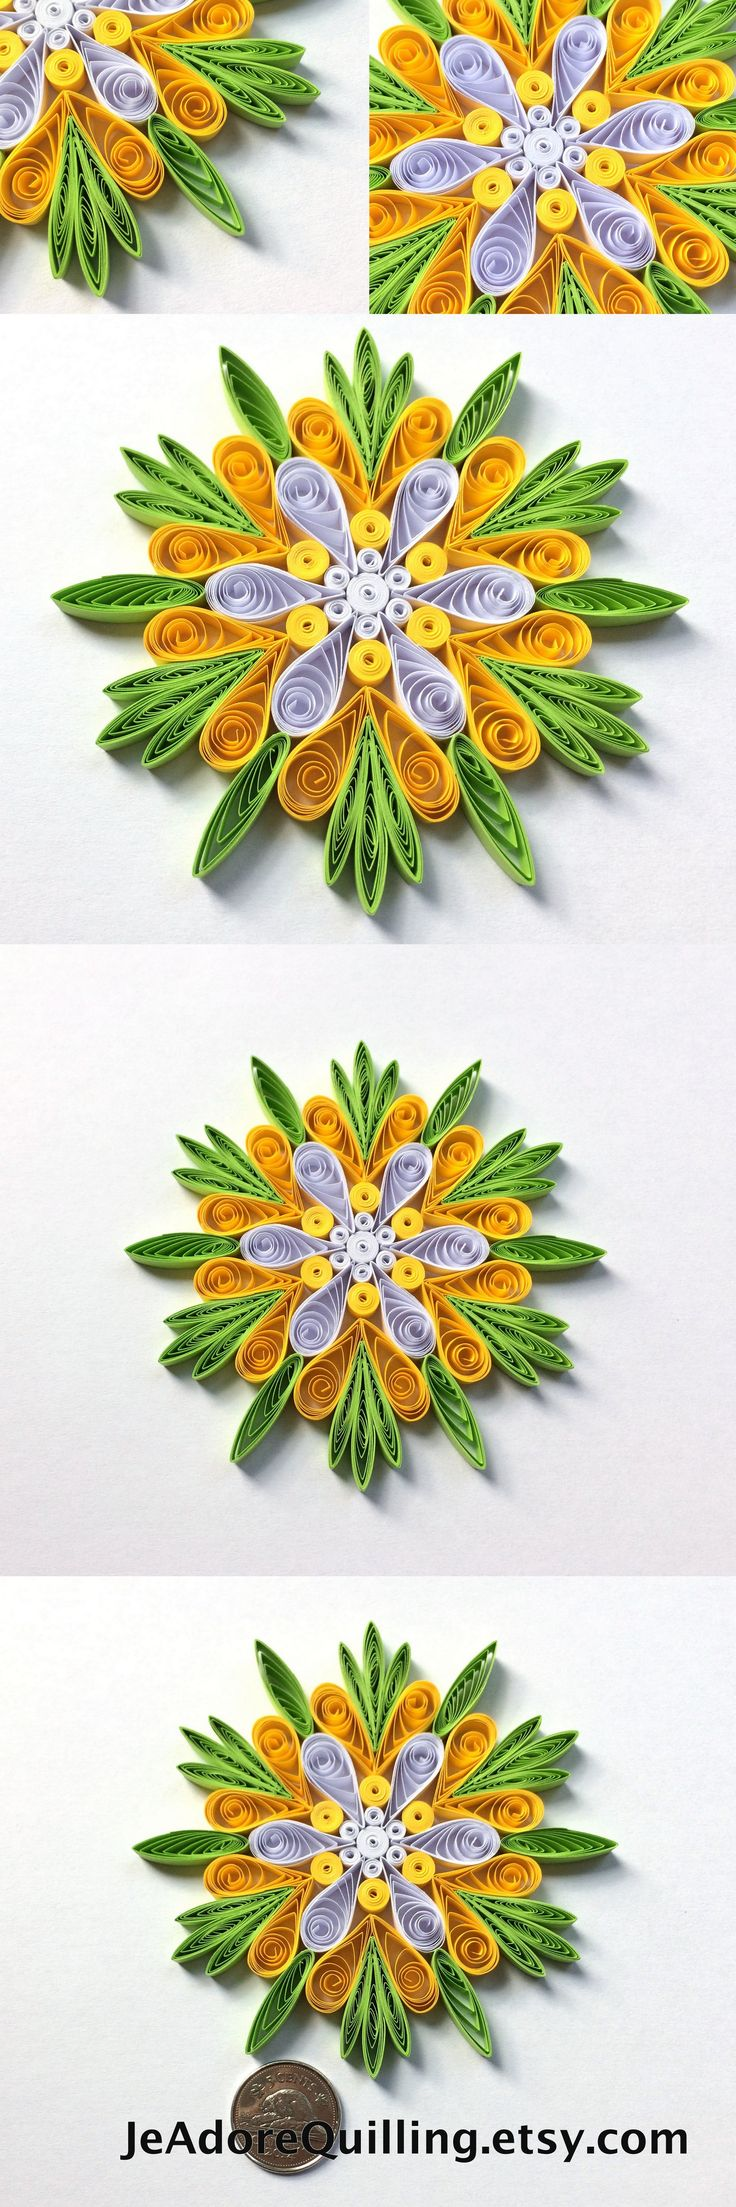 Snowflake Green Yellow White Christmas Tree Decoration Winter Ornaments Gifts Toppers Fillers Office Corporate Paper Quilling Quilled Art